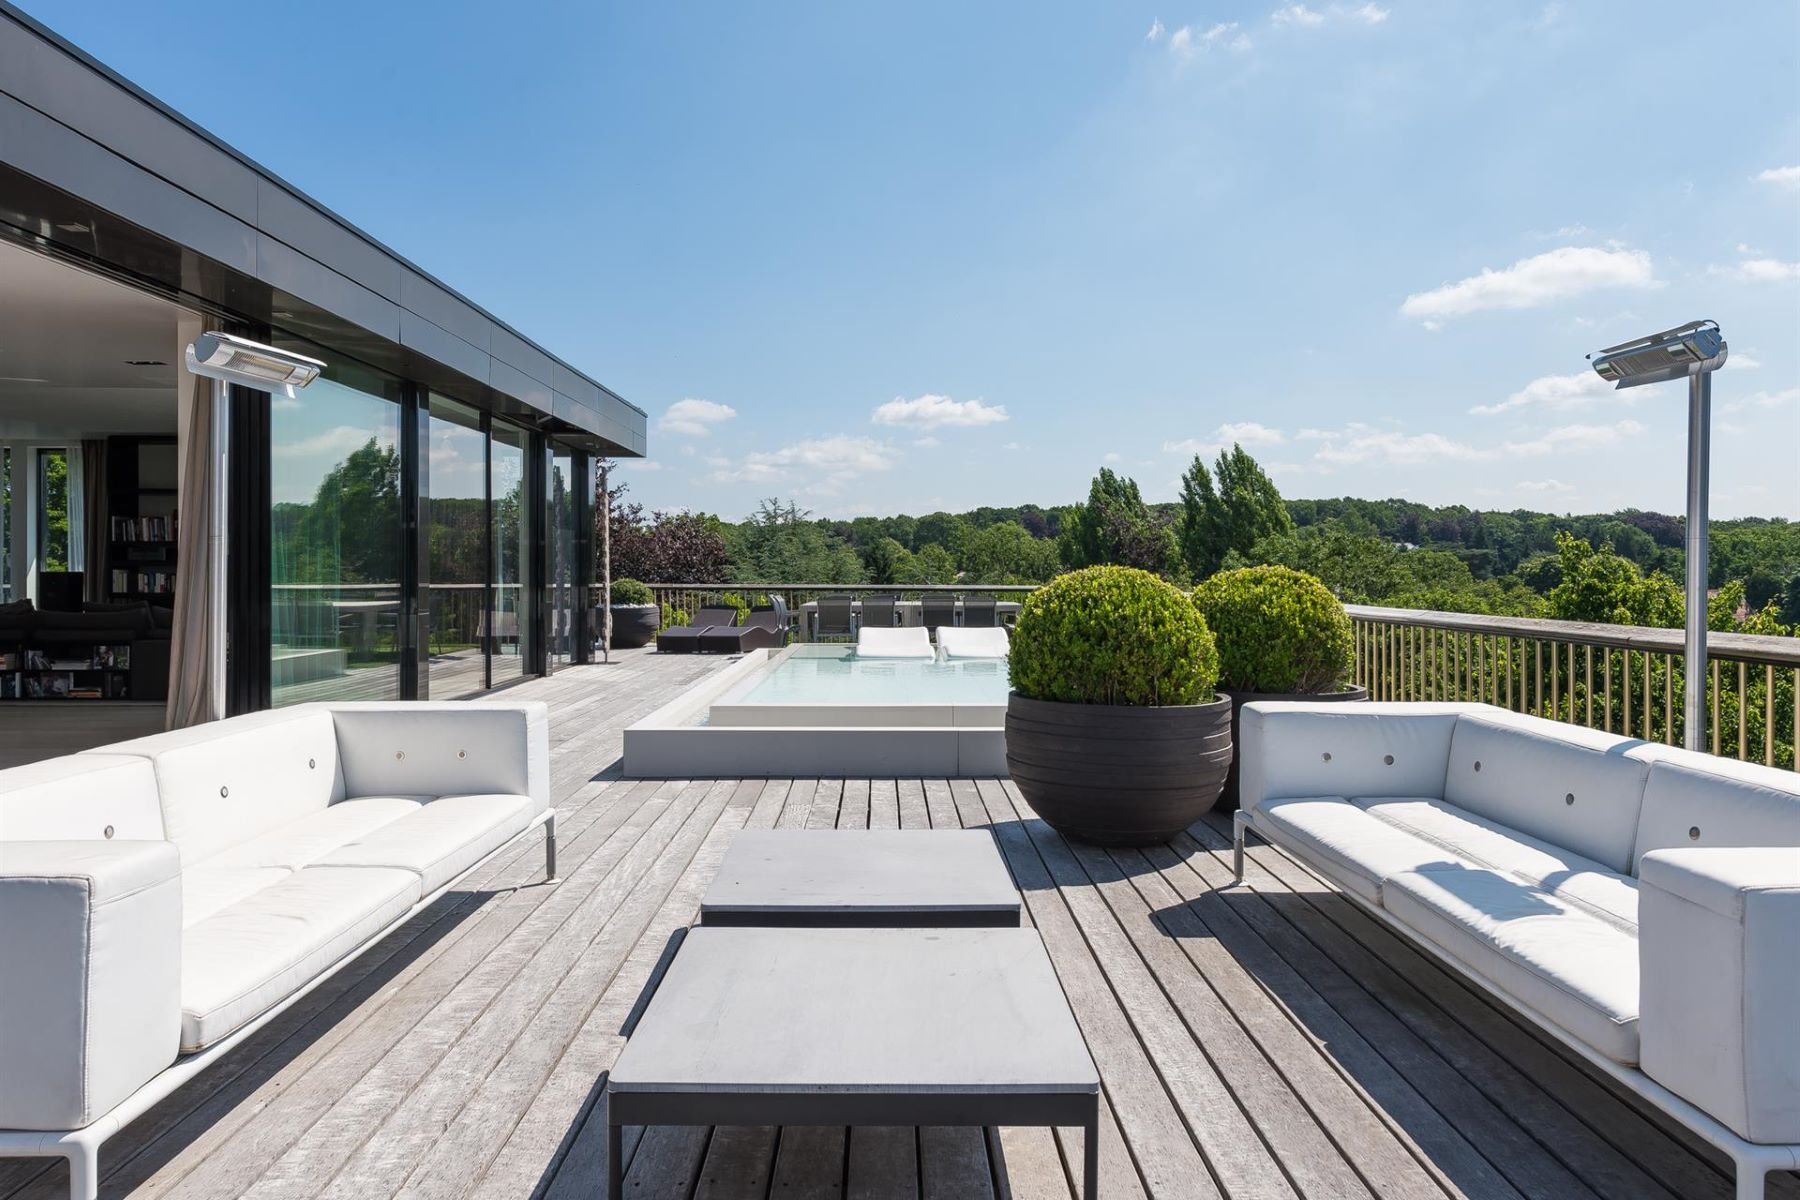 Apartments for Sale at Uccle I Hamoir district Uccle, Brussels 1180 Belgium